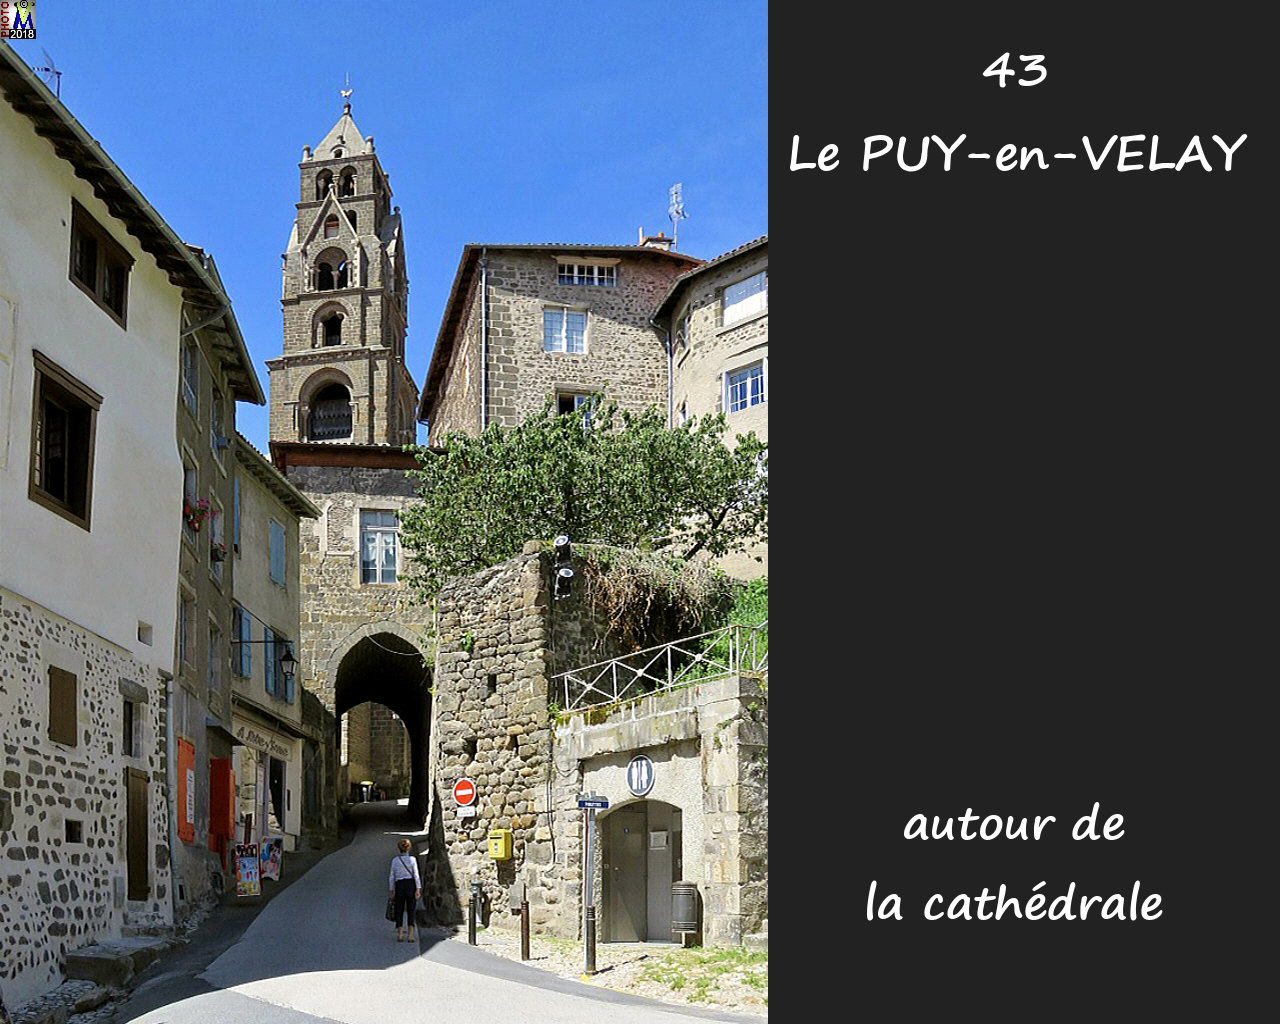 43PUY-EN-VELAY_cathedrale_404.jpg